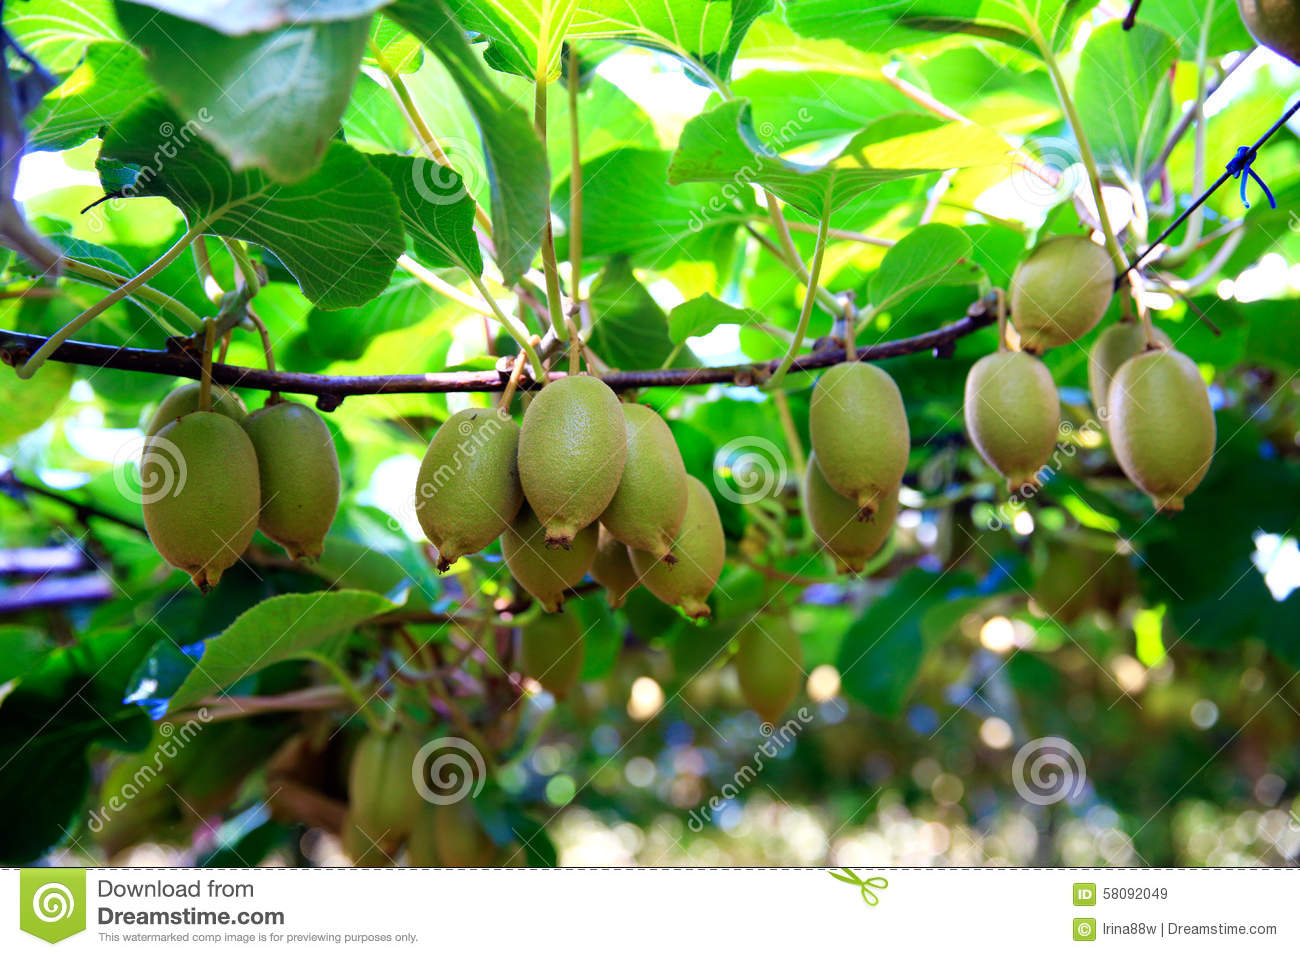 Kiwis growing in orchard in New Zealand.